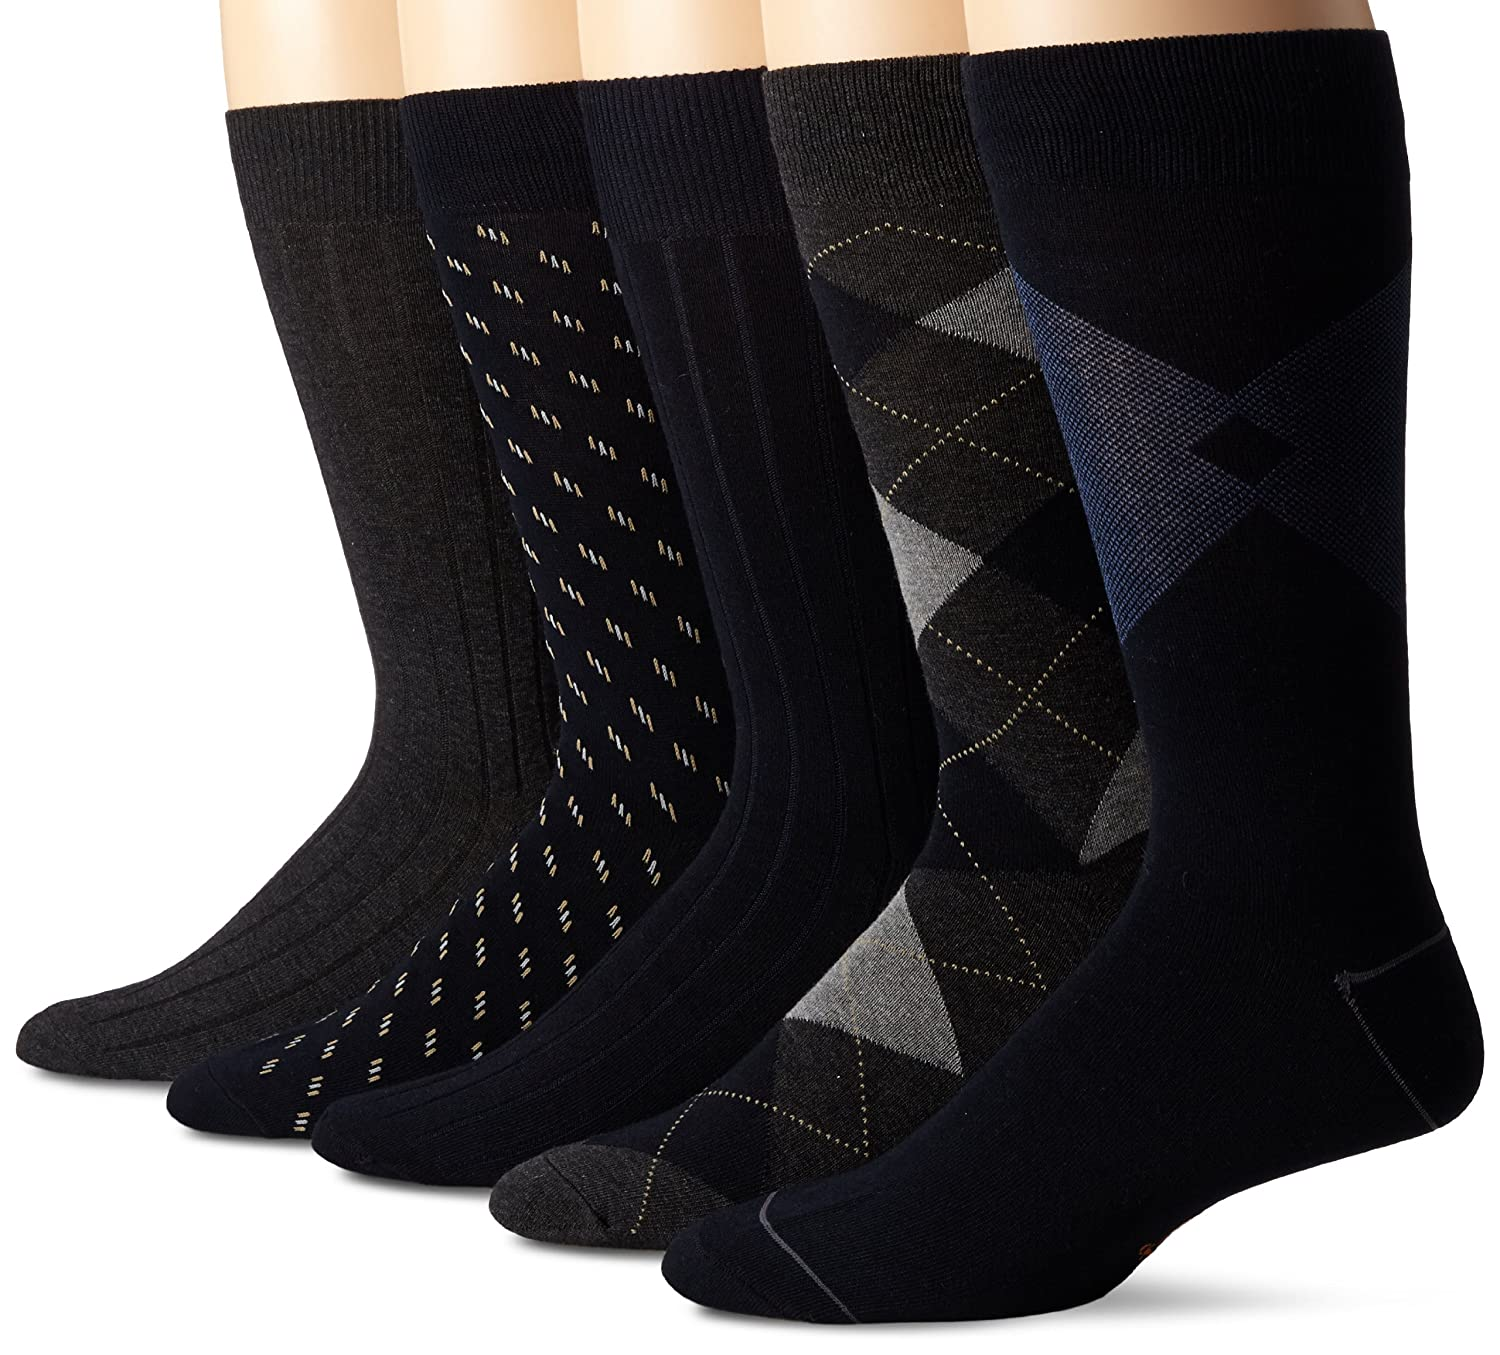 Dockers Men's Classics Dress Argyle Crew Socks, (Pack of 5) Black Royce Too D51007